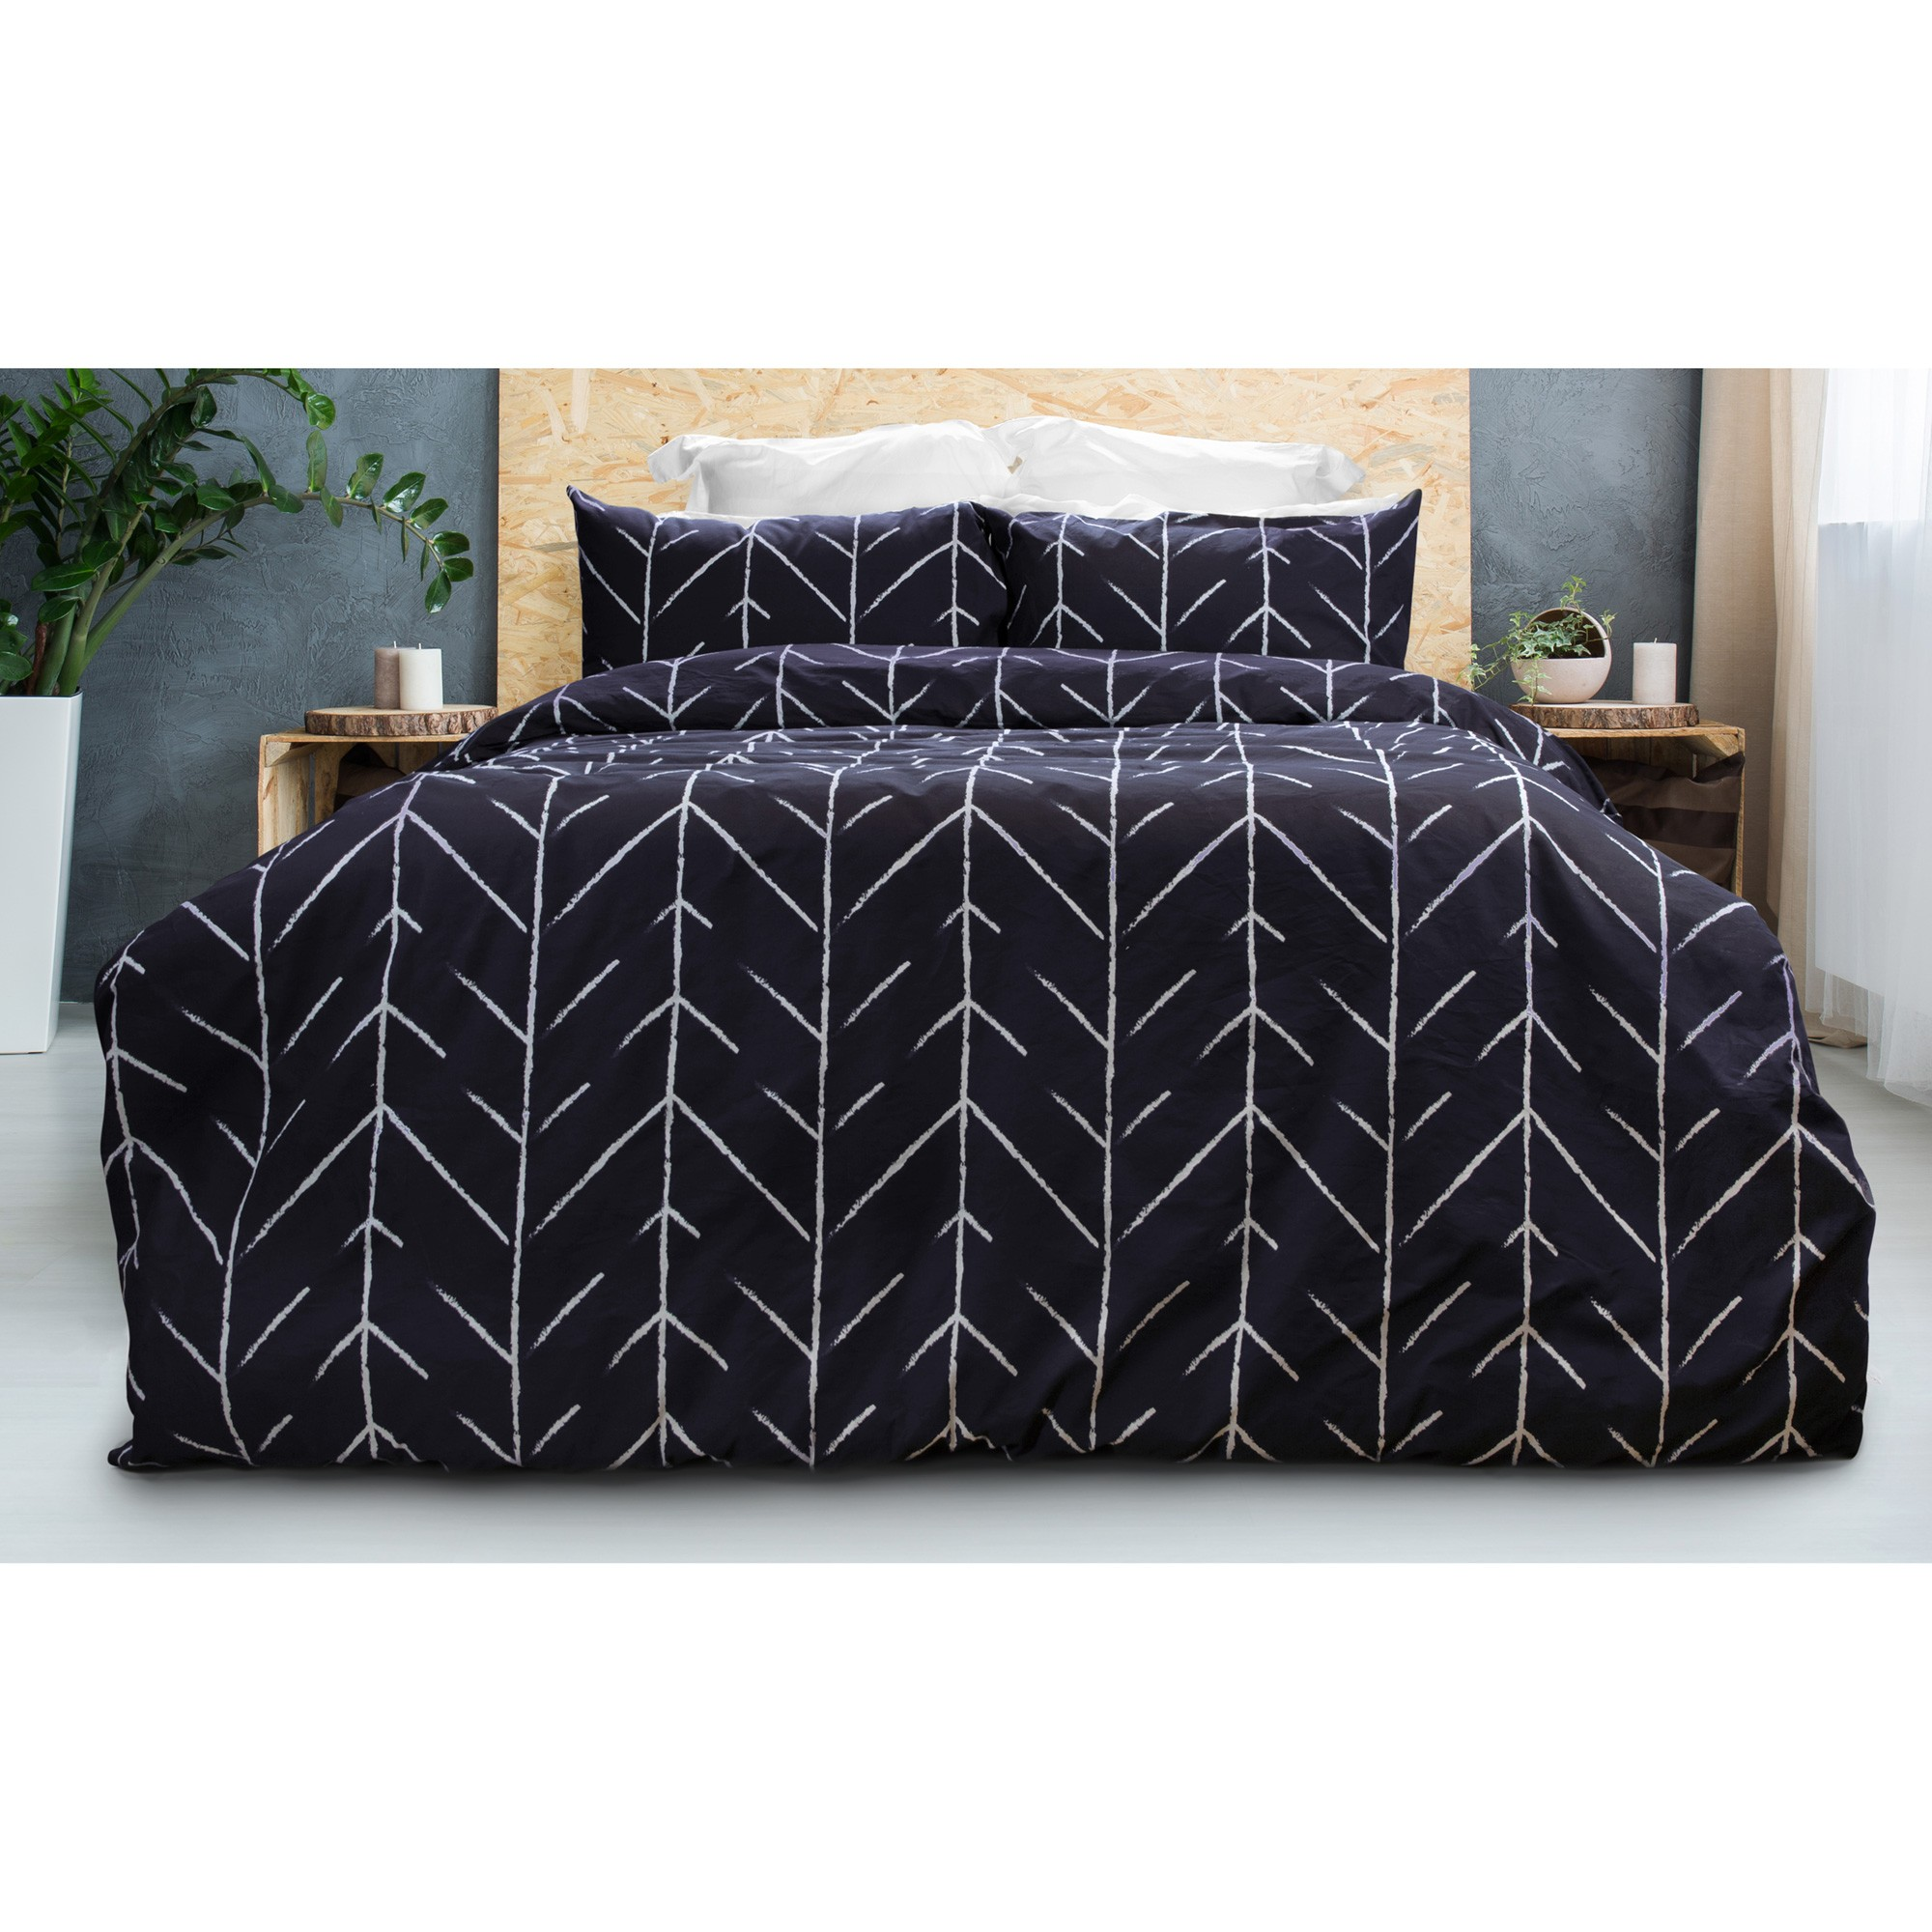 Peaks 2 Piece Cotton Quilt Cover Set, Single